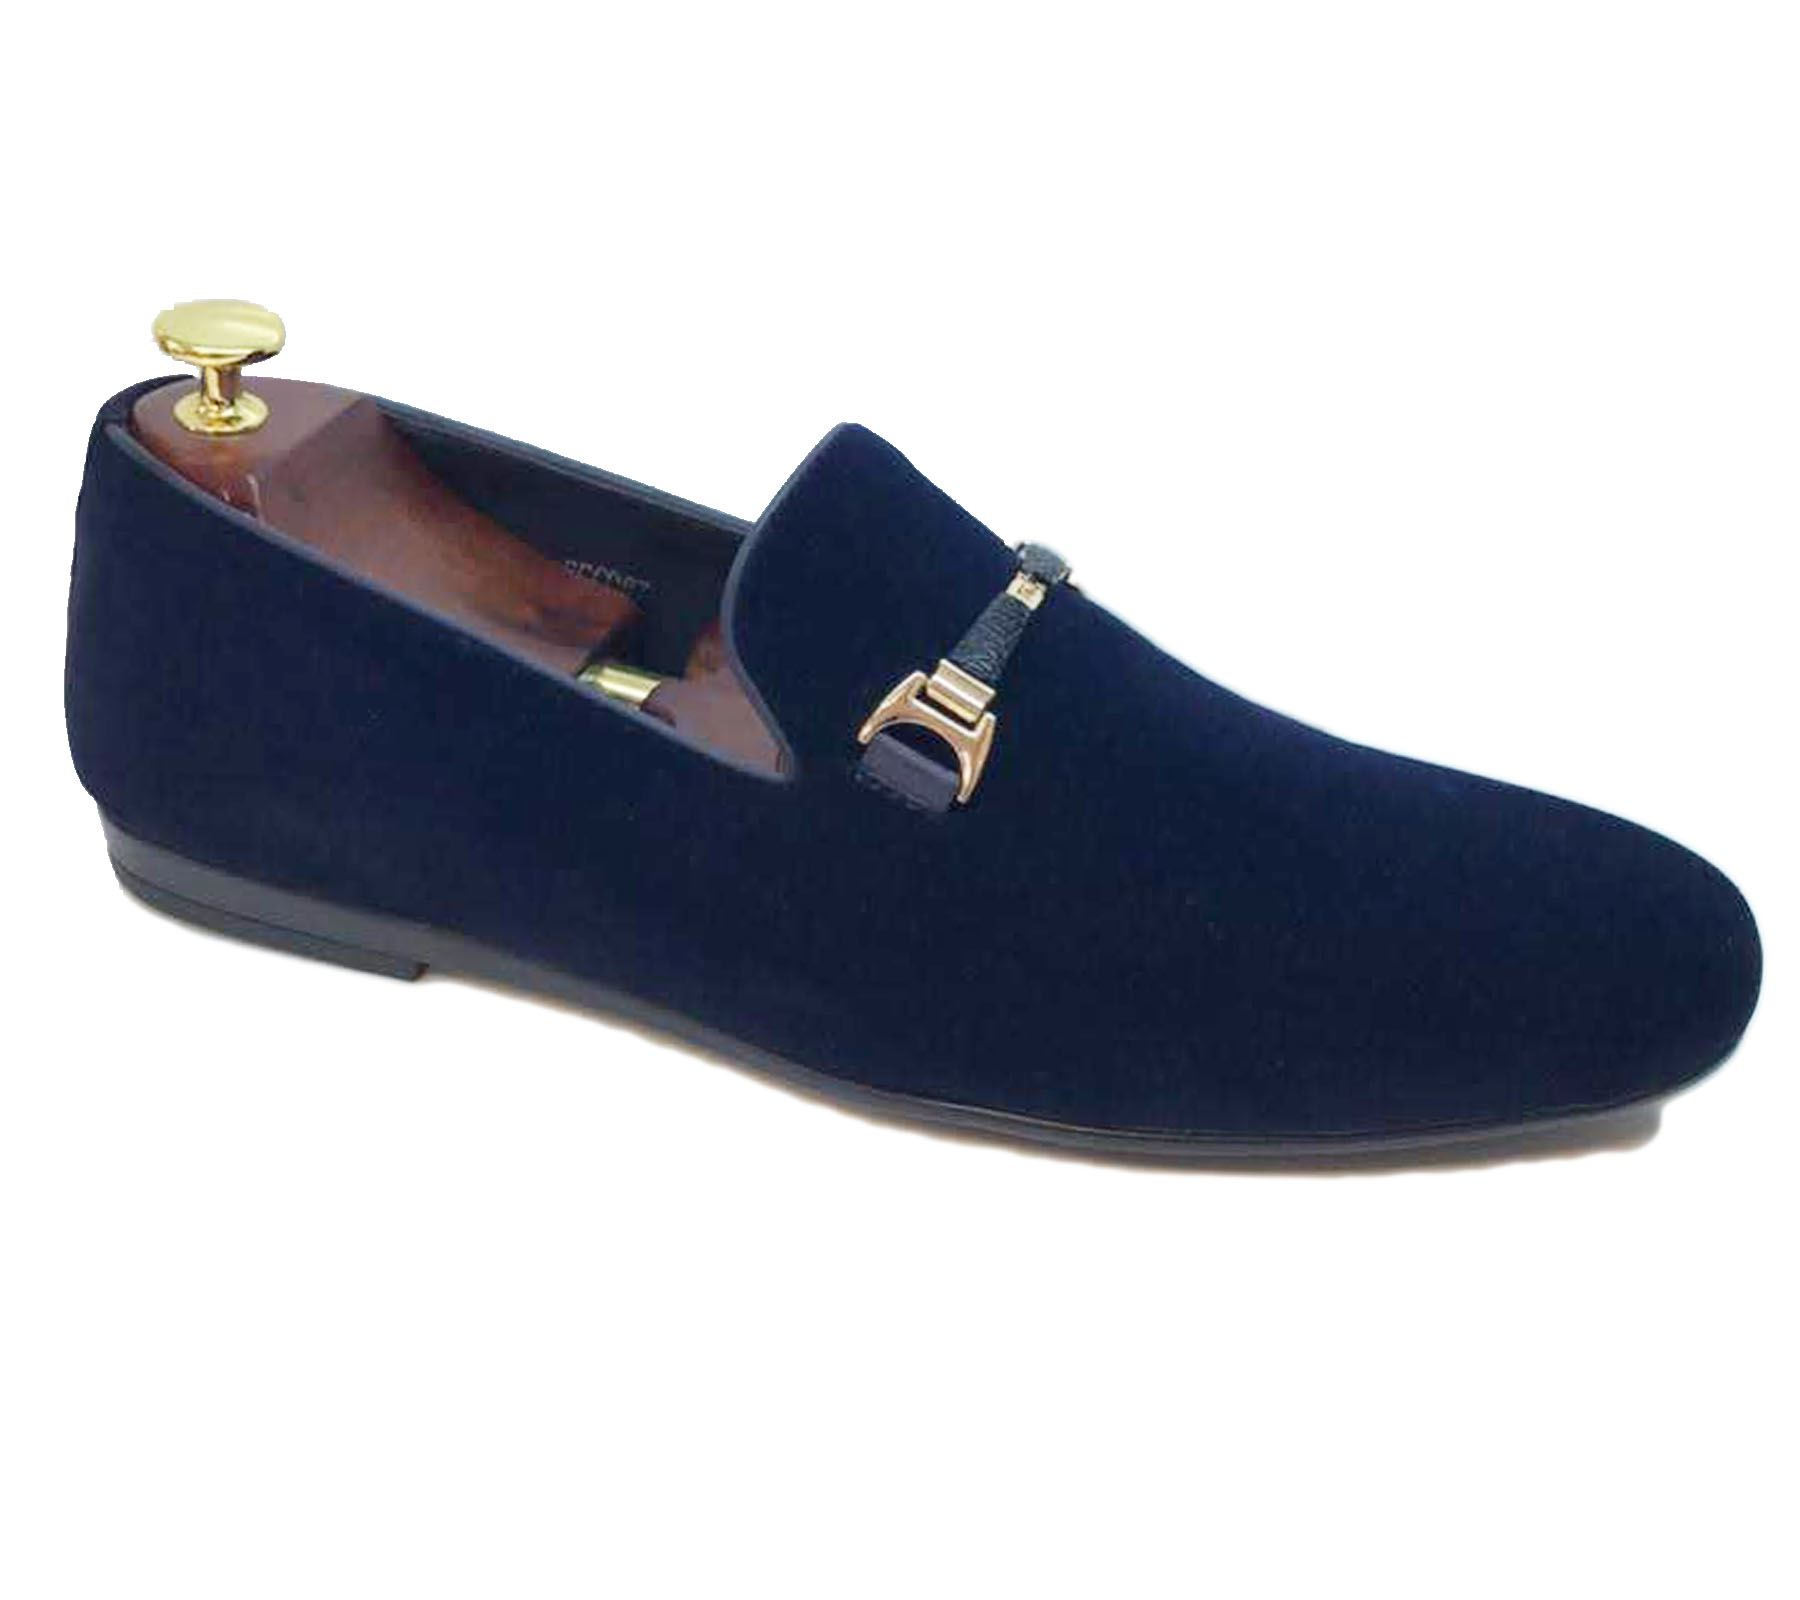 Mens-Loafers-Mocassin-Boat-Deck-Shoes-Flat-Slip-On-Driving-Casual-Smart-Pumps thumbnail 20